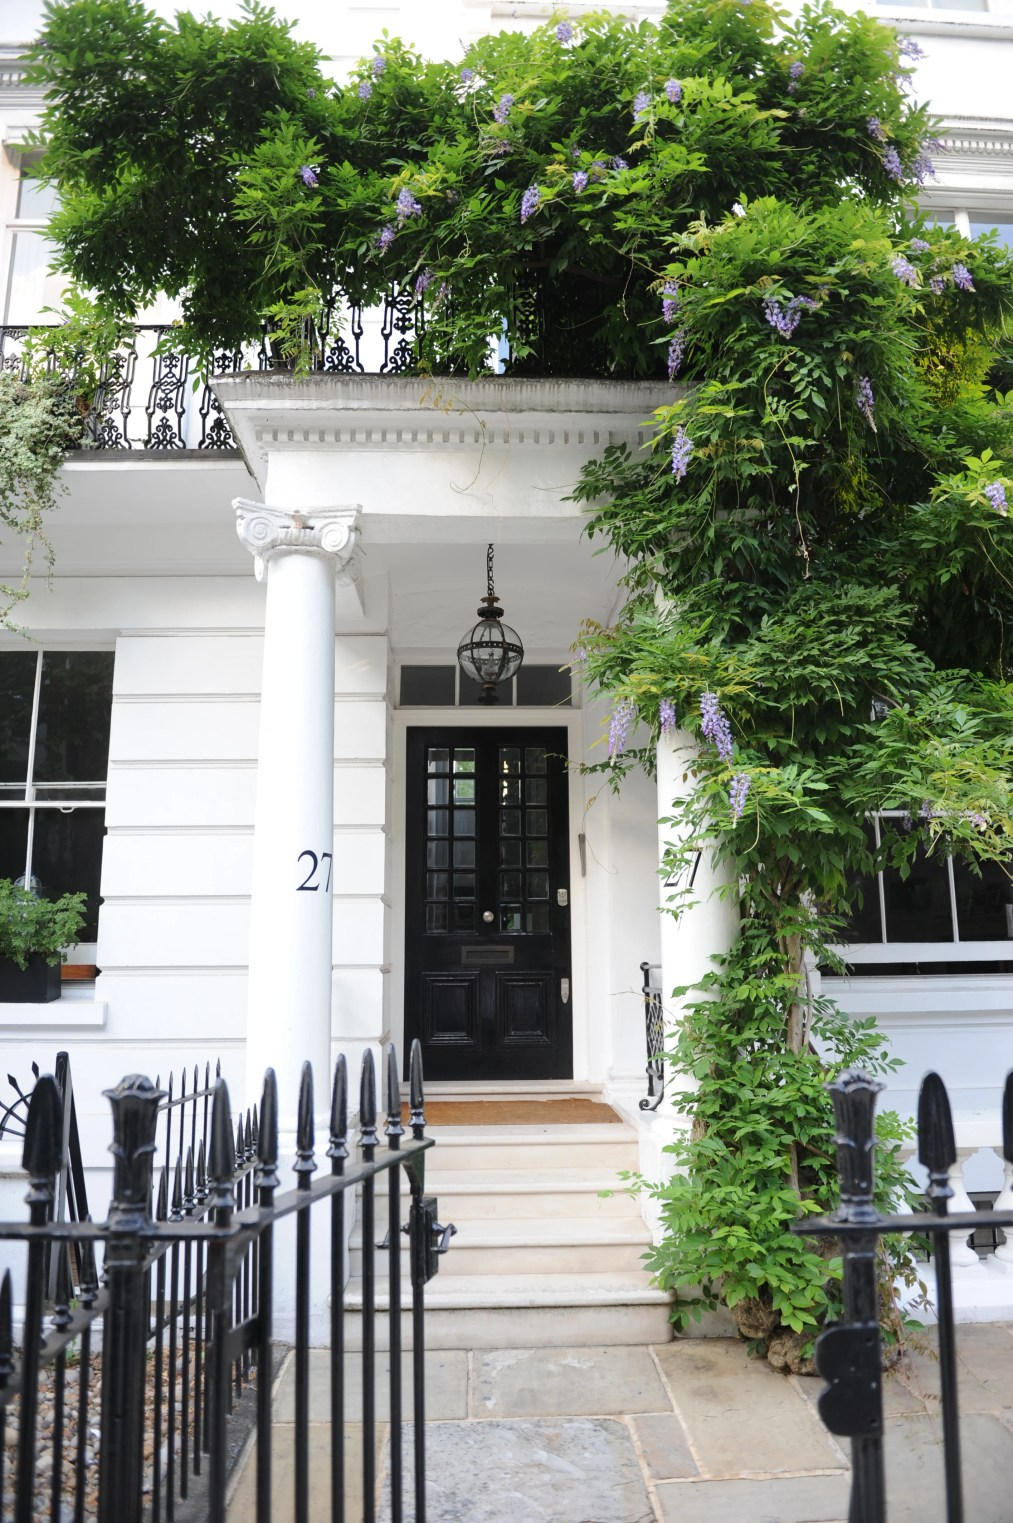 Best neighborhoods to stay i london with family